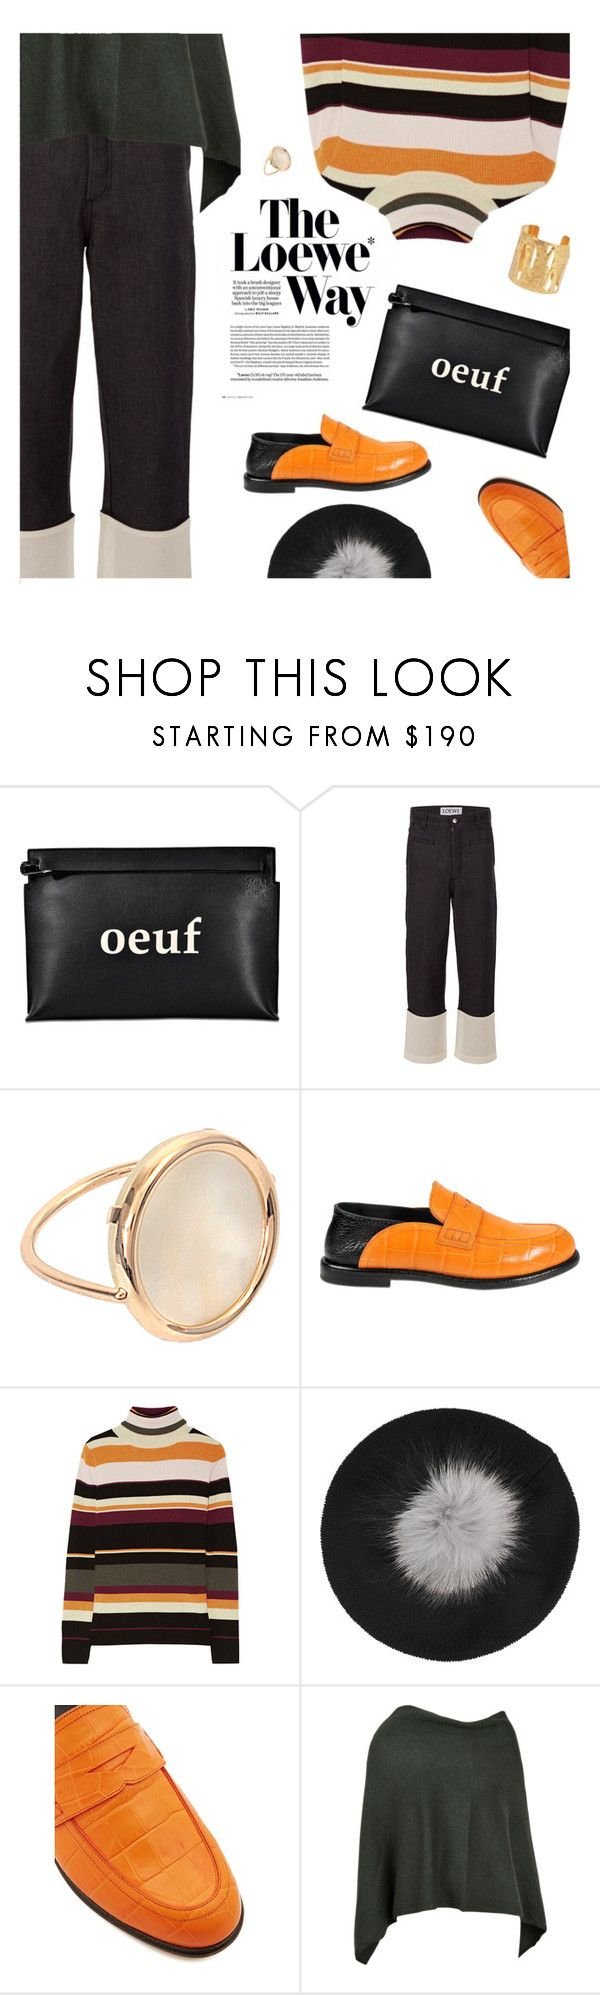 """Winter street style"" by magdafunk ❤ liked on Polyvore featuring Loewe, Ginette NY, Paul & Joe, Inverni, Eric Bompard, Sylvia Toledano, beanies, statementshoes, poncho and stripedsweater"